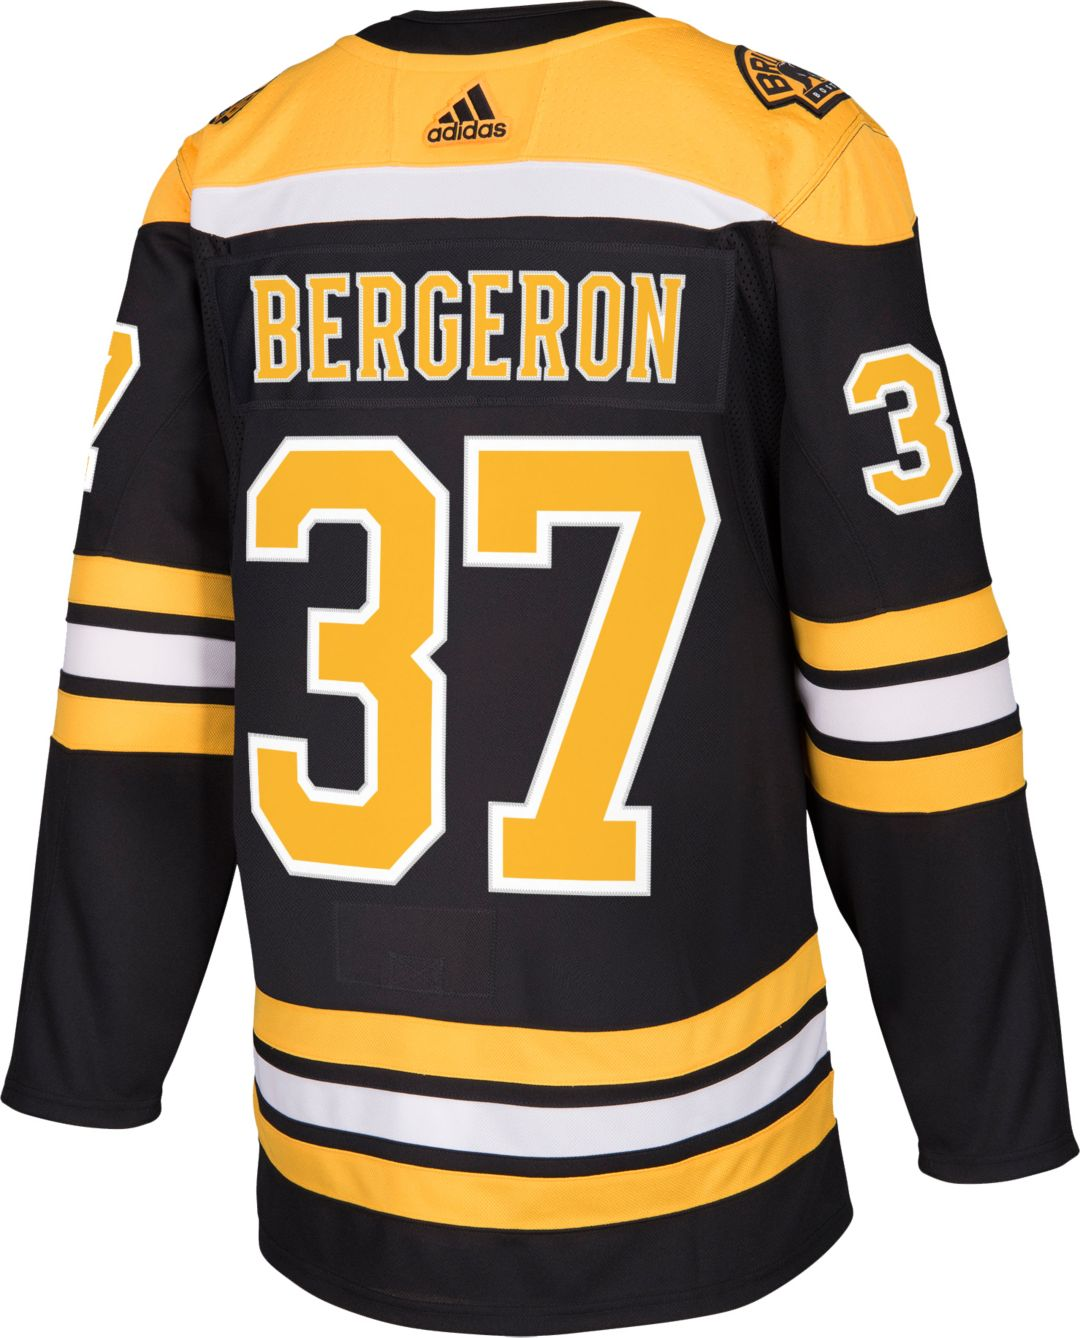 new style 5291a 09034 adidas Men's Boston Bruins Patrice Bergeron #37 Authentic Pro Home Jersey